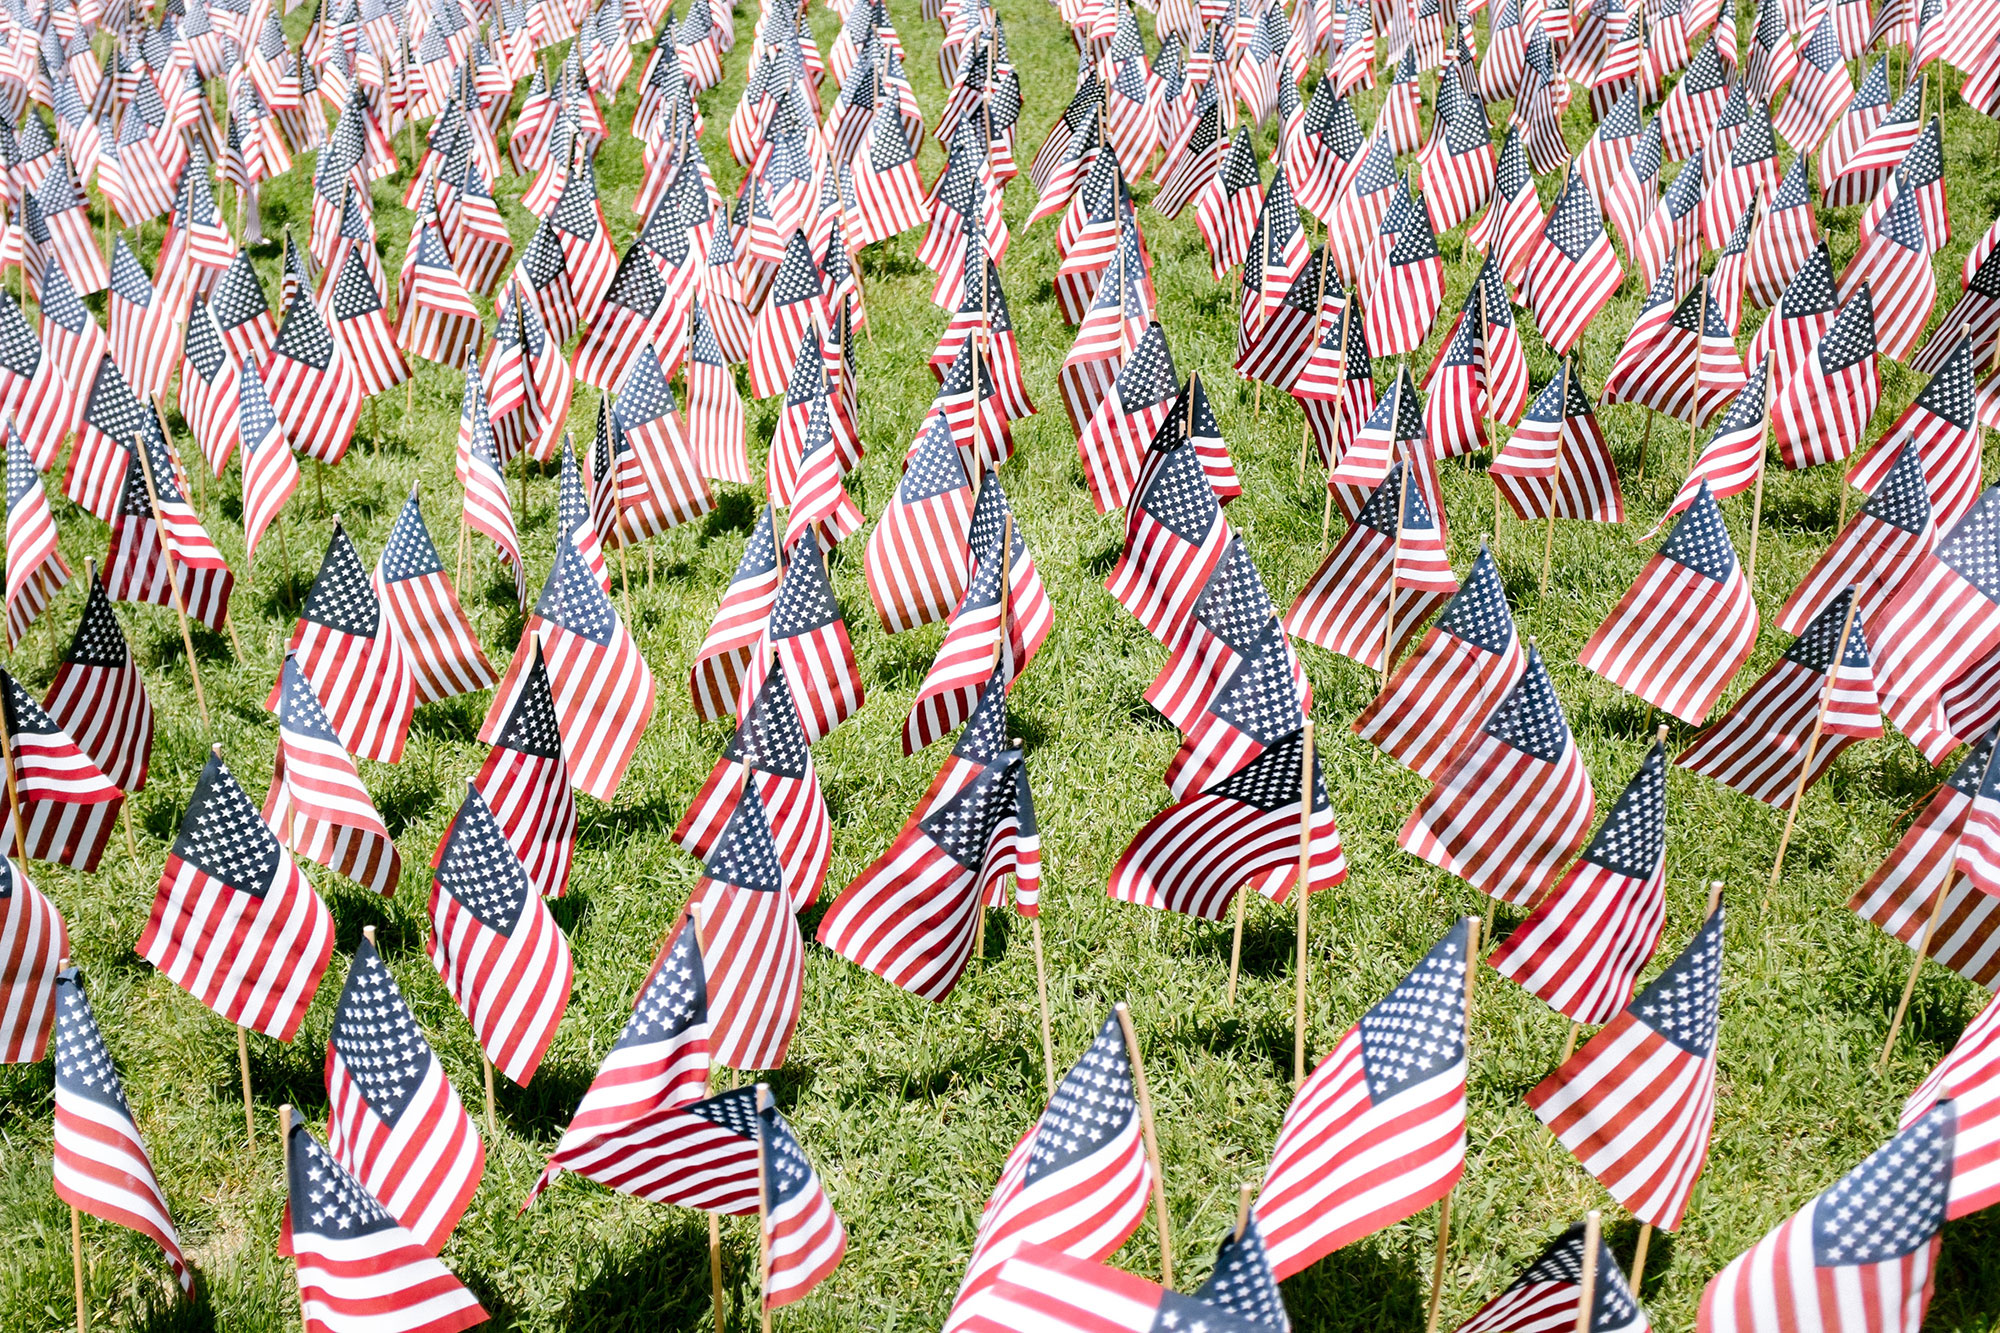 Grass covered in rows of small American flags.